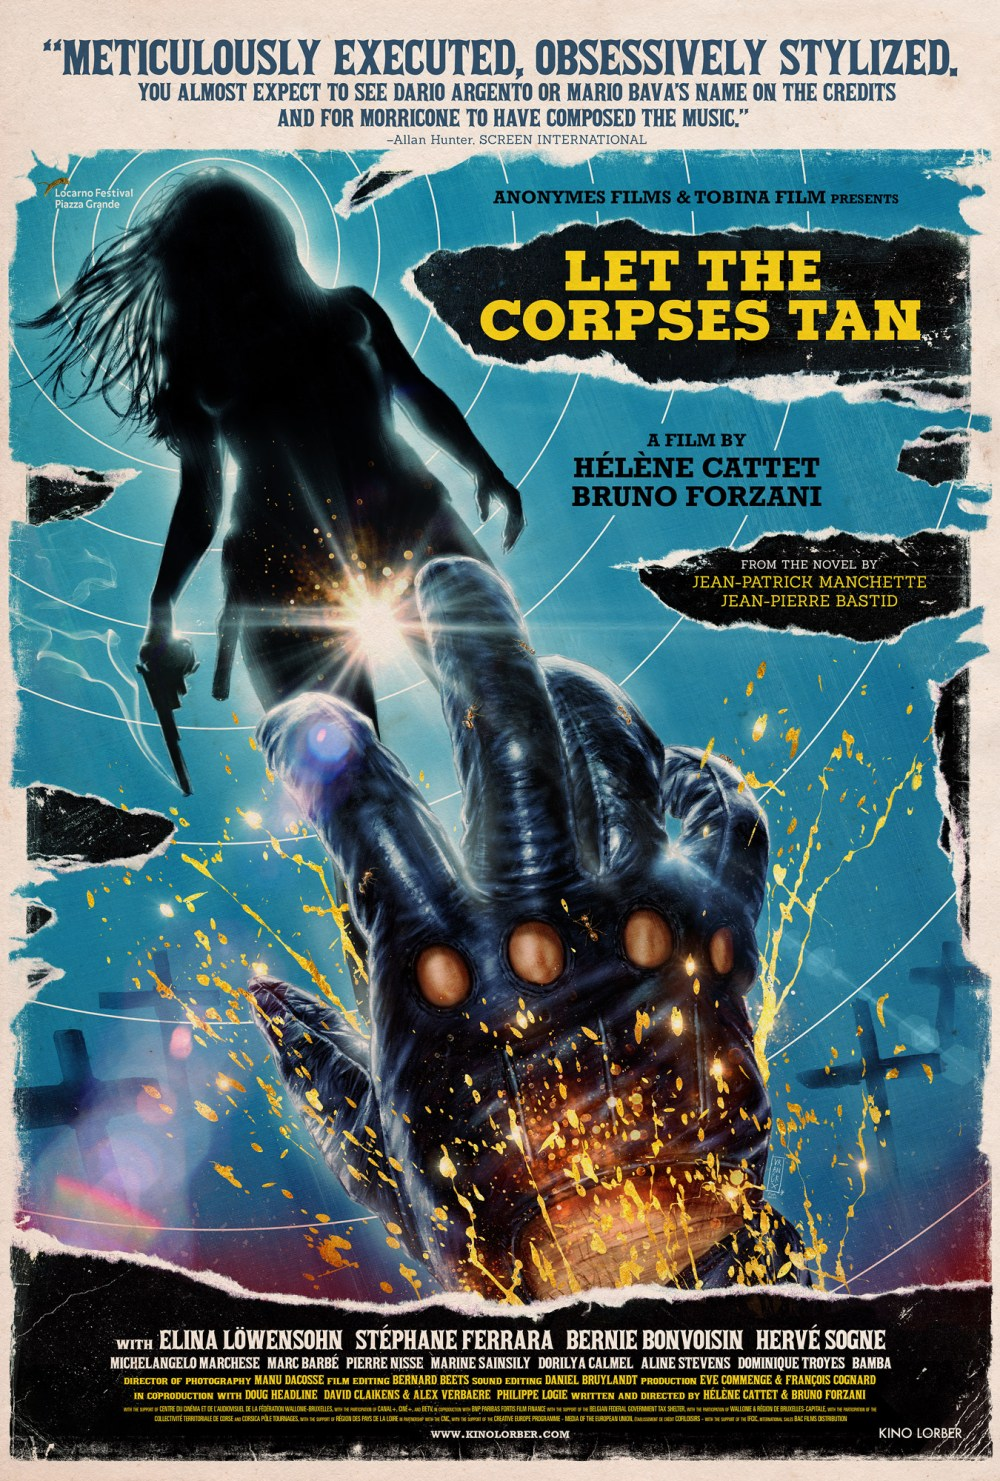 Kino Lorber Will 'Let the Corpses Tan' This August - Bloody Disgusting